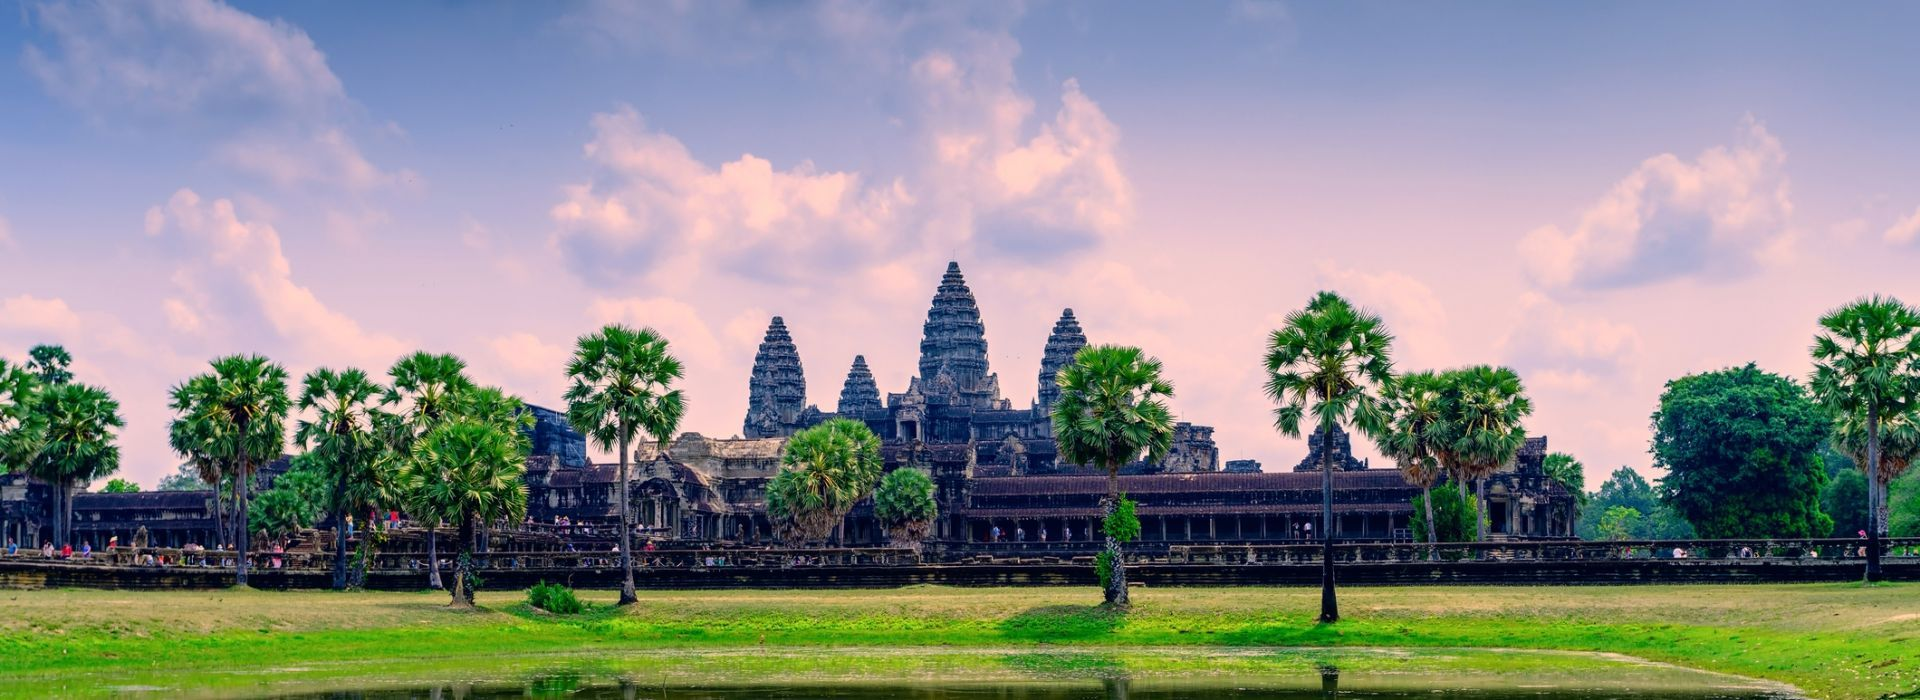 Local boat rides Tours in Siem Reap